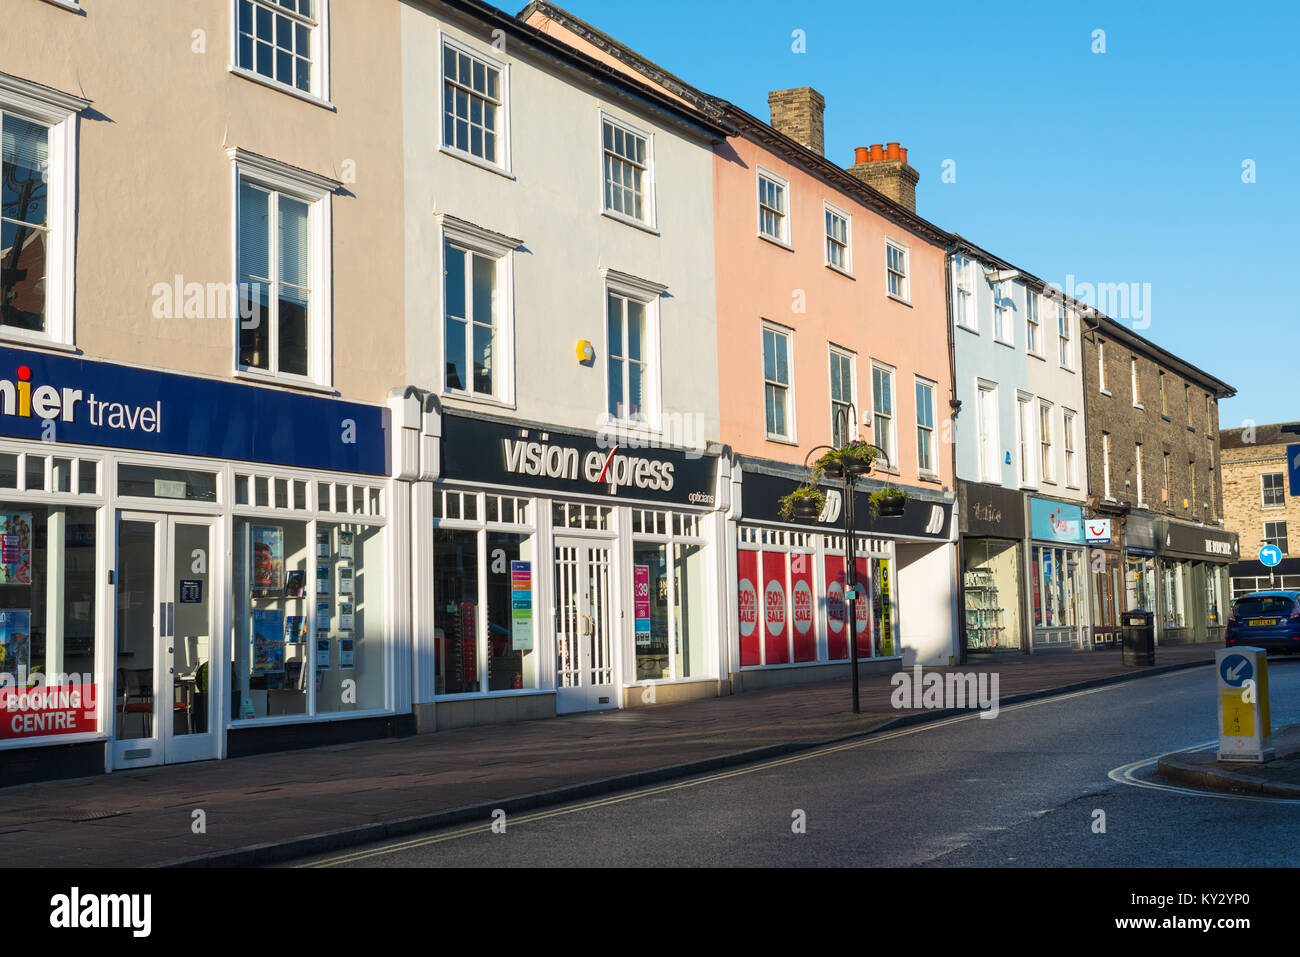 Shopfronts along Buttermarket in Bury St Edmunds town centre. Suffolk, East Anglia, England, UK - Stock Image